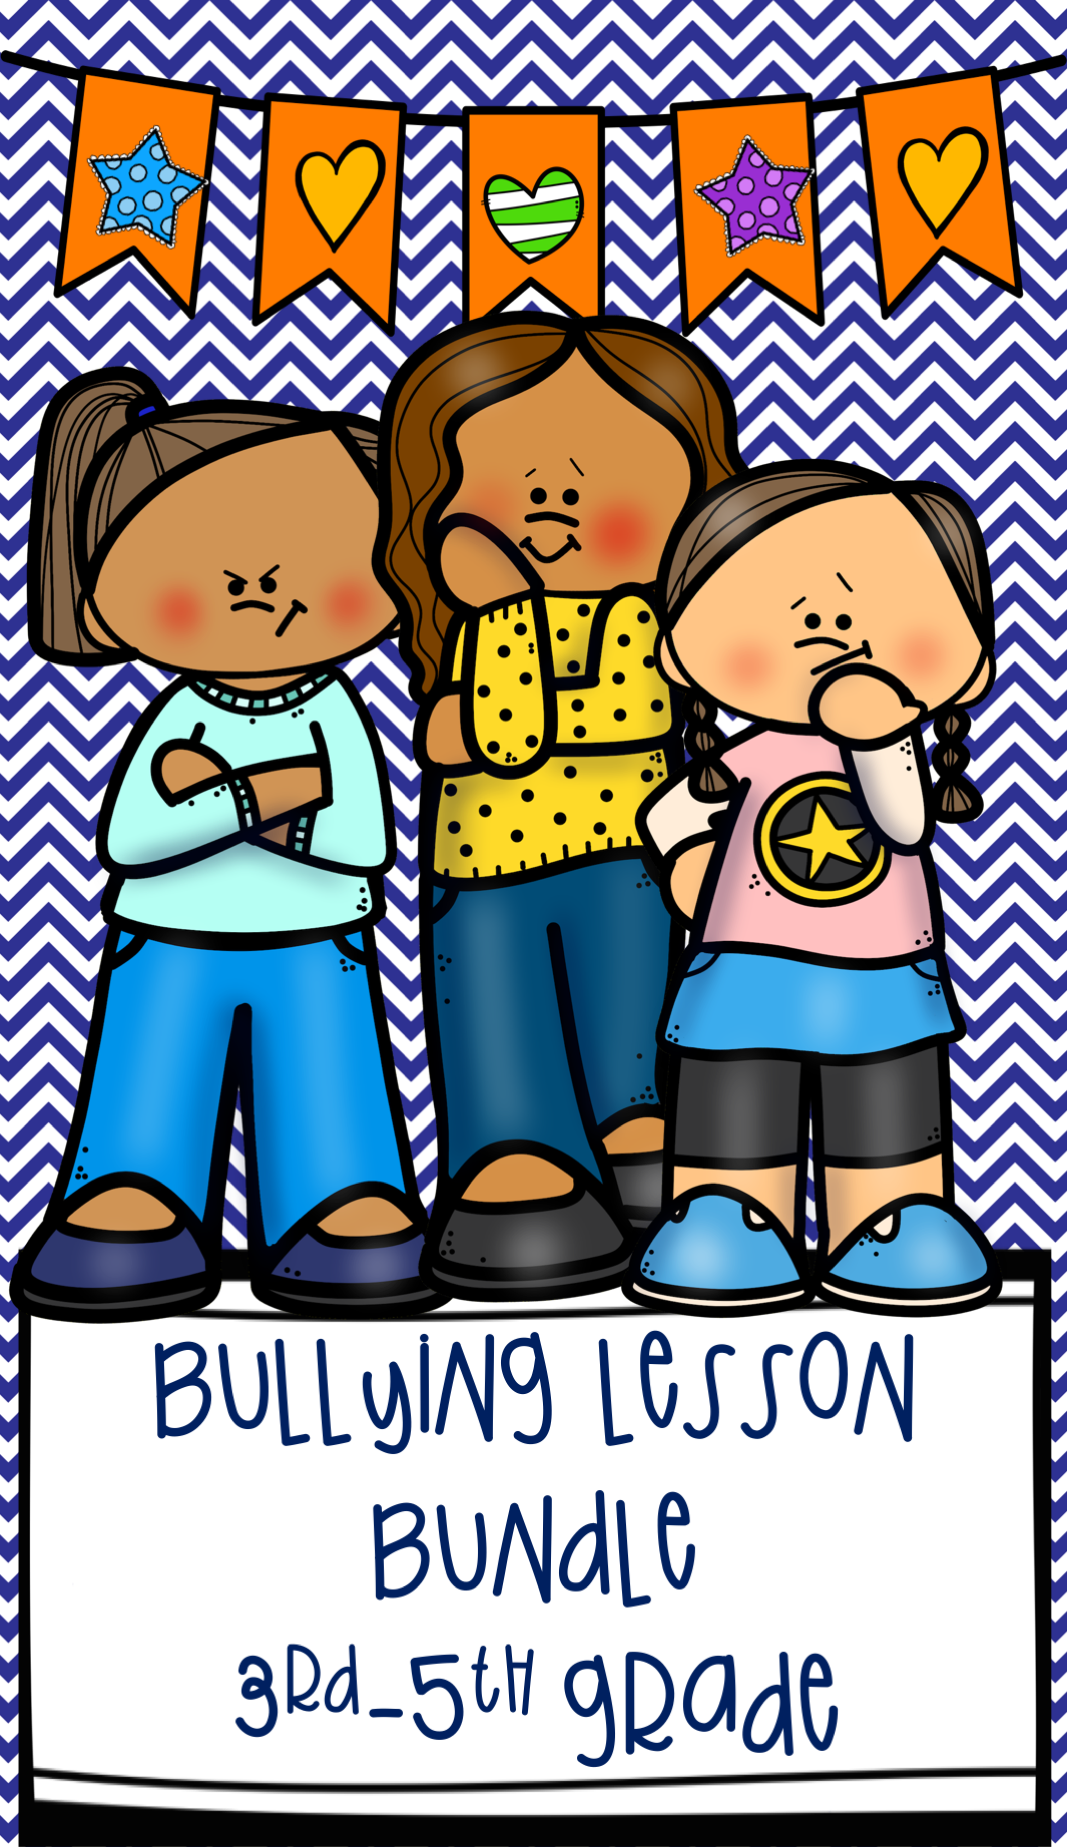 3rd 5th Grade Bullying Mega Pack